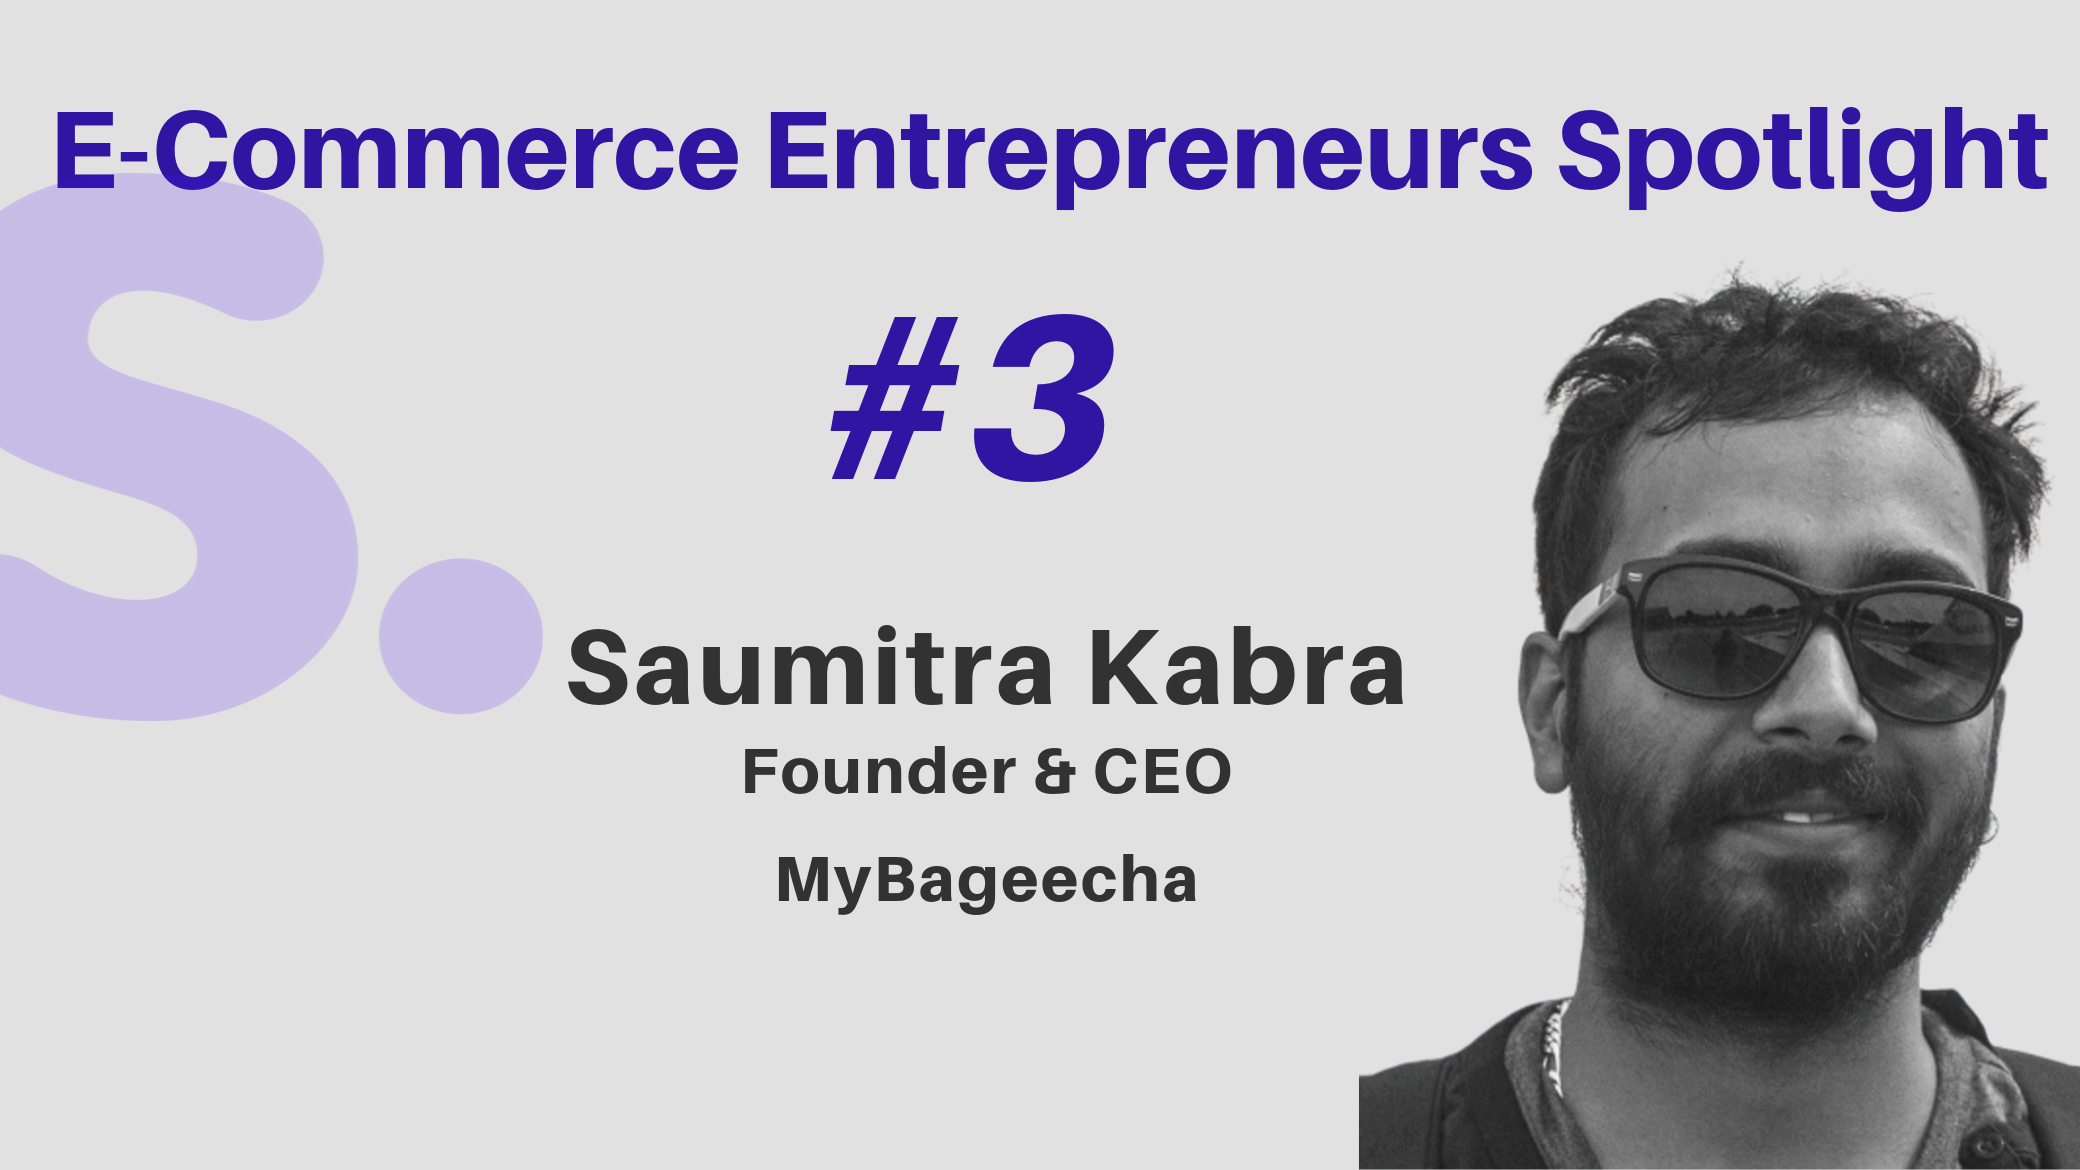 Shoppr E-Commerce Entrepreneurs Spotlight - Saumitra Kabra